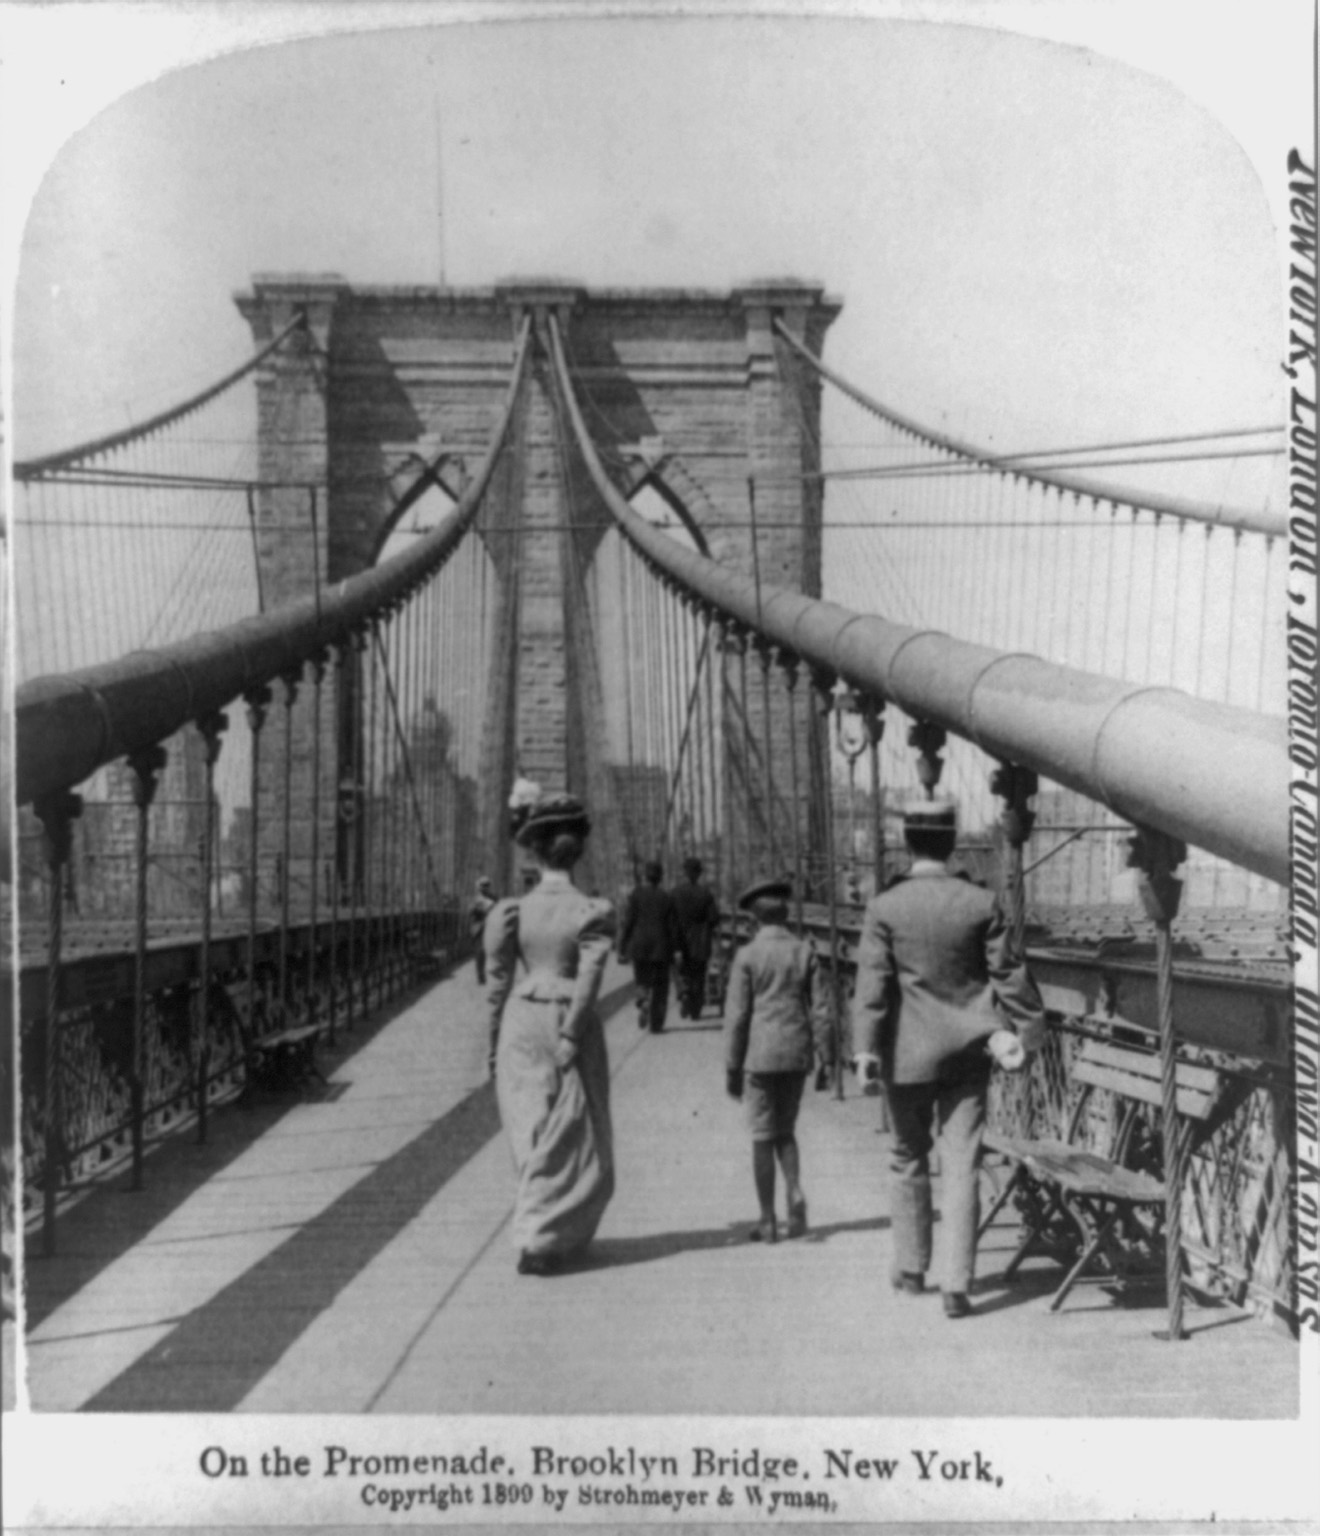 http://upload.wikimedia.org/wikipedia/commons/2/2a/Brooklyn_Bridge_New_York_City_1899_Pedestrian_Crossing.jpg